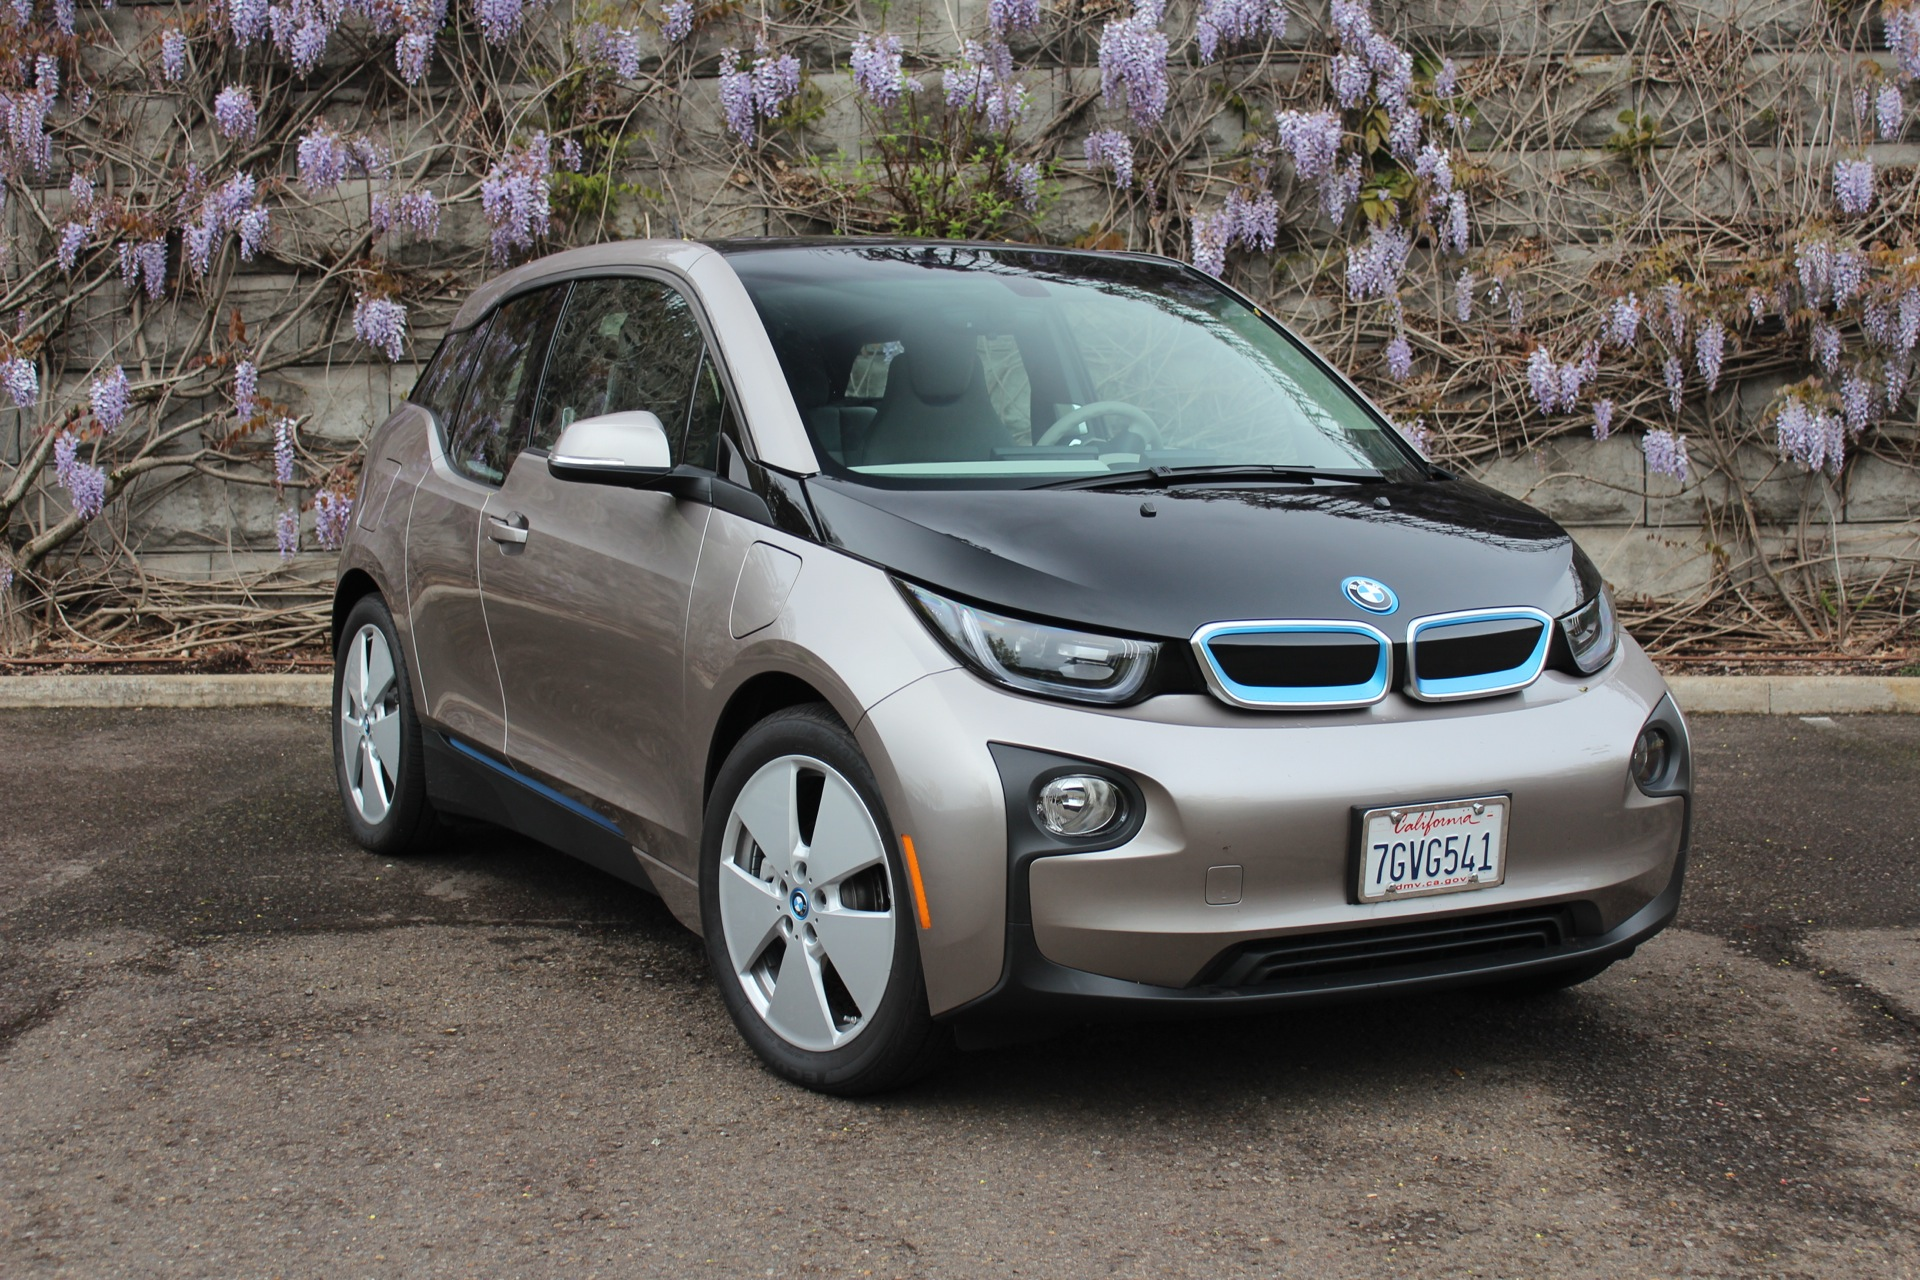 Bmw I3 Electric Car Quirk No Am Radio Offered But Why Update